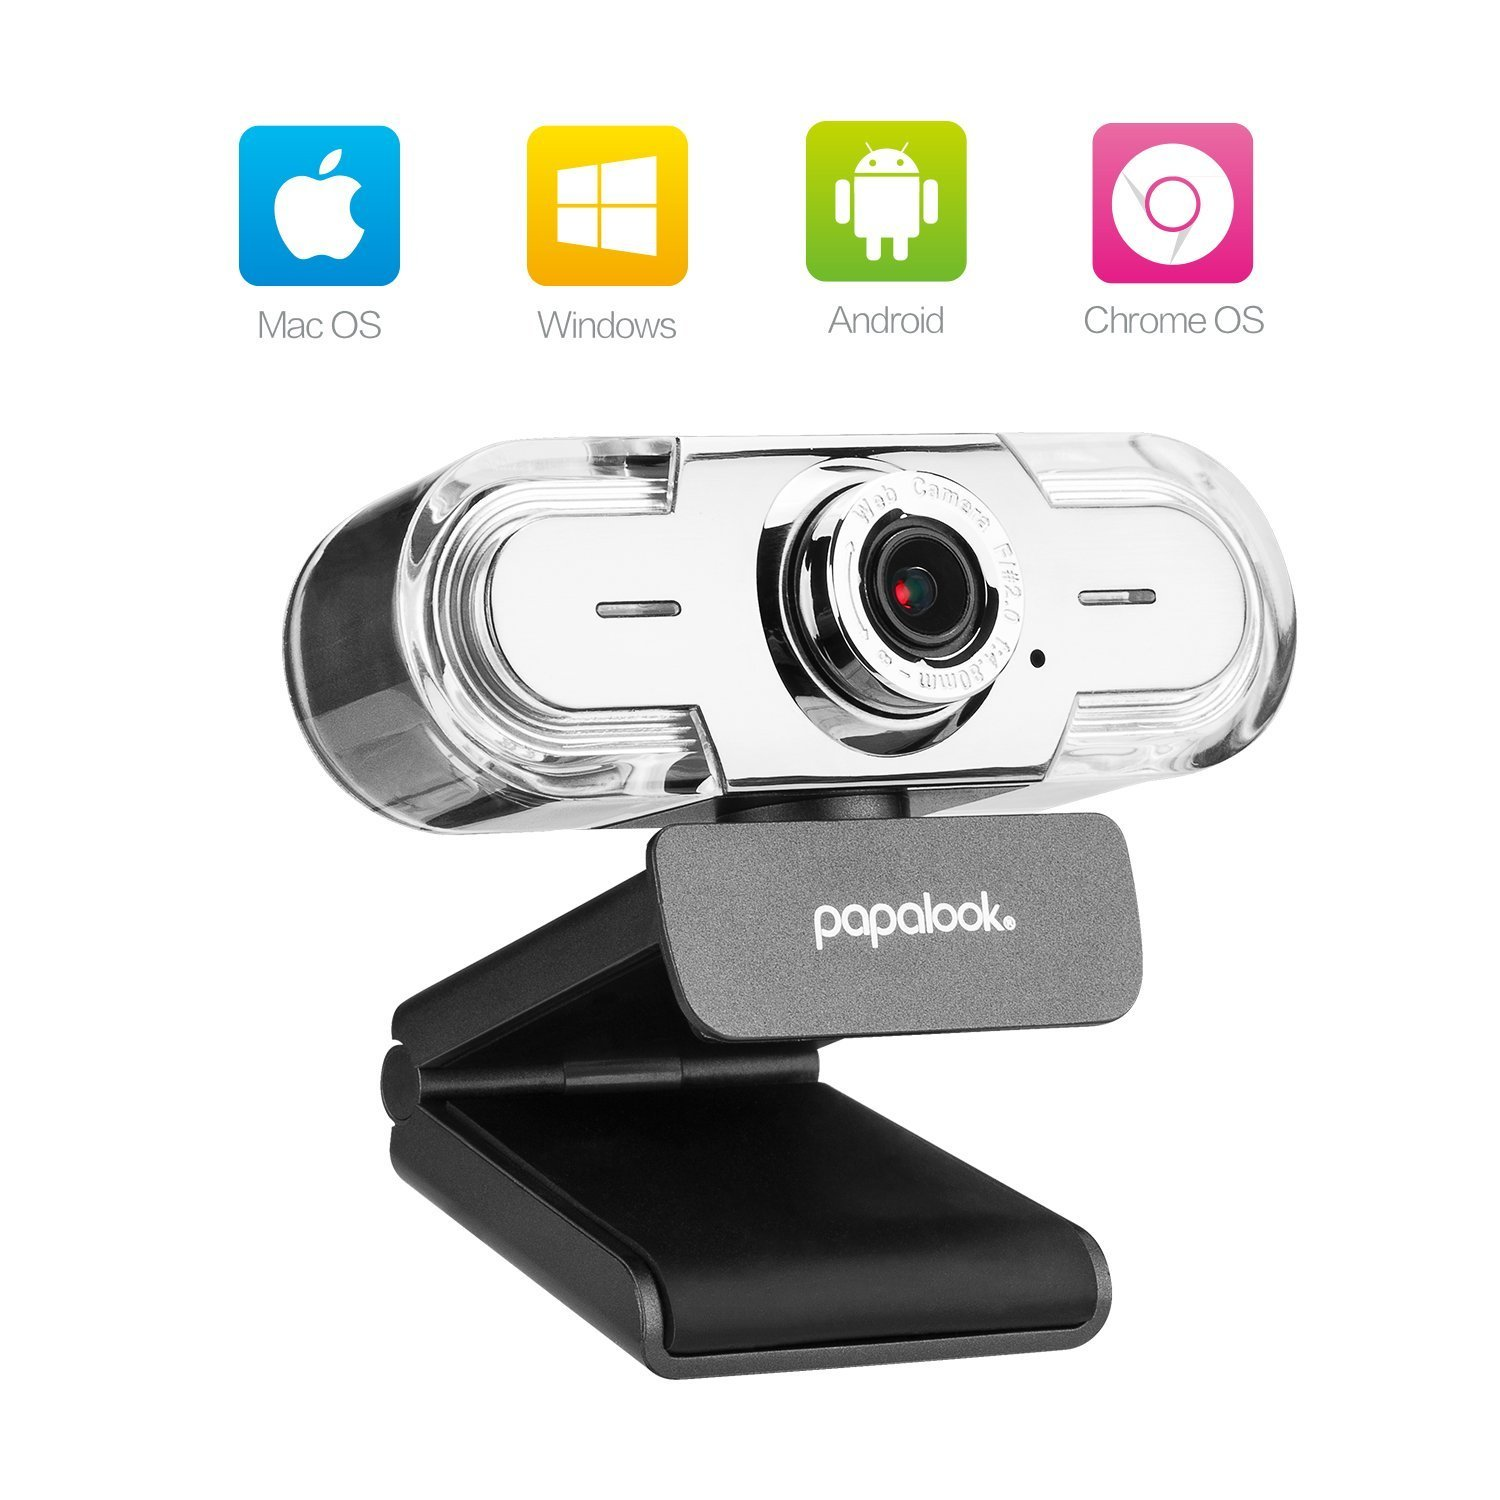 PAPALOOK 1080P HD Webcam, USB PC Computer Camera PA452 PRO Web Camera, Built-in Mic for Video Skype YouTube Compatible with Windows 7/8/10 by papalook (Image #2)